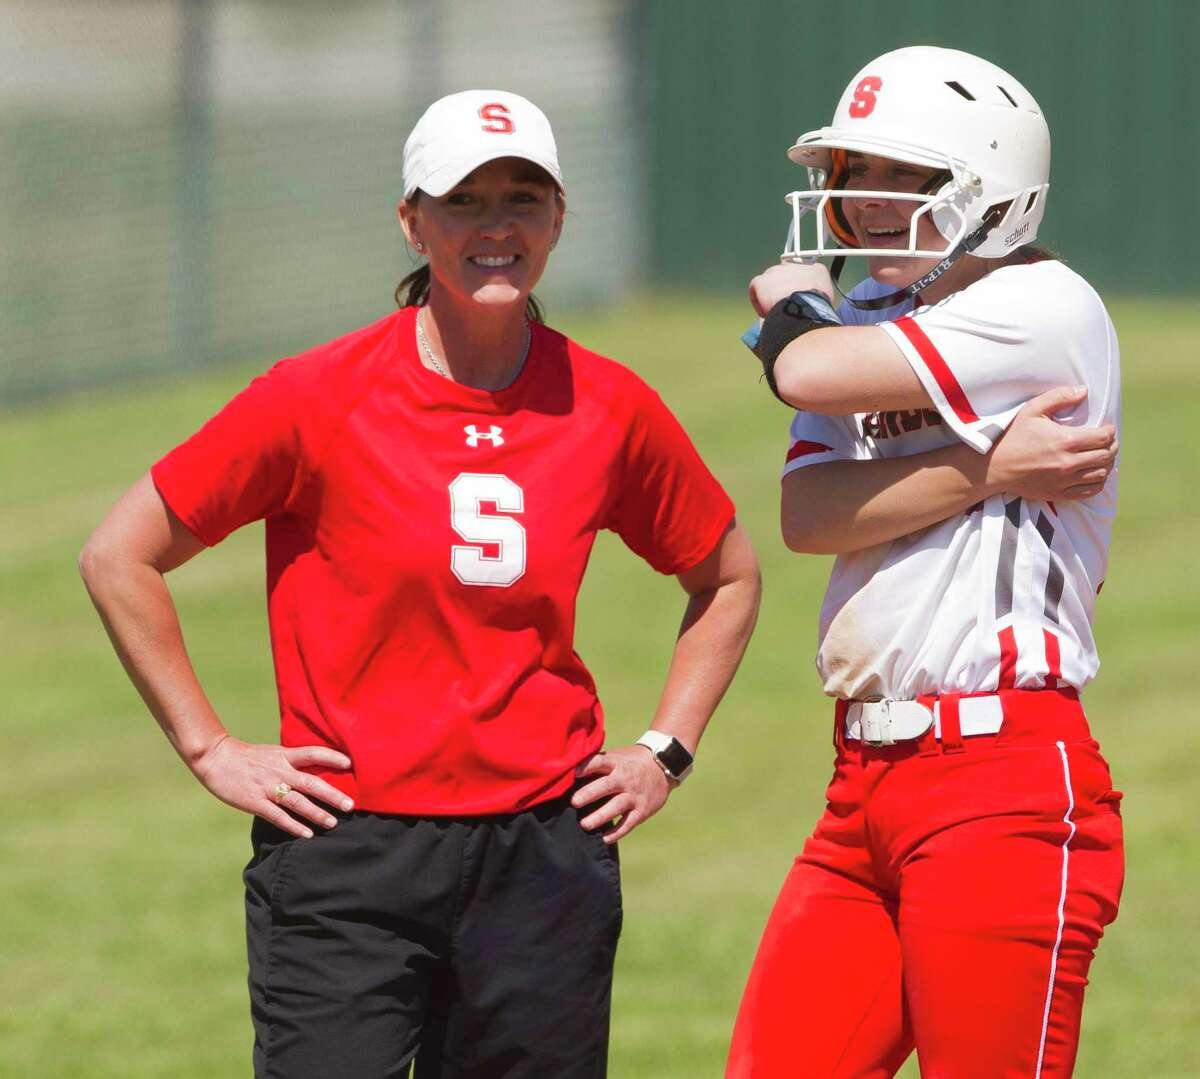 Deana Eubanks, pictured on the left in 2018, is the new assistant athletic director at Splendora. She'll remain the softball coach as well, as she enters her eighth year at the school.